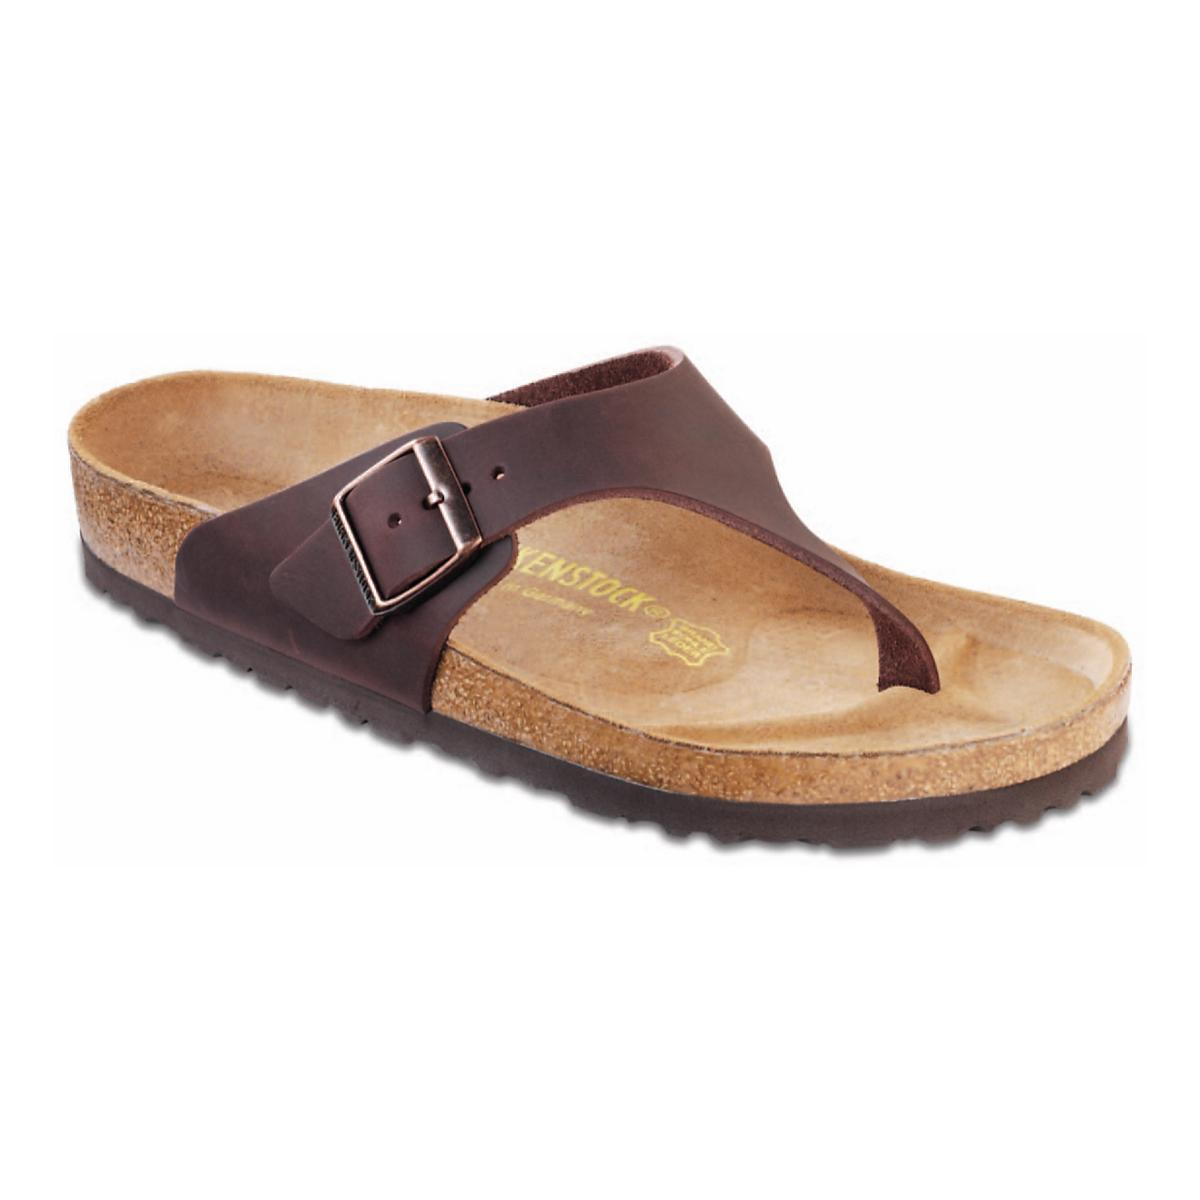 85d2bede1 Are you currently tired of those common seaside shoes  Perhaps you don t  want to merge with the group and you d like setting your own style trend.